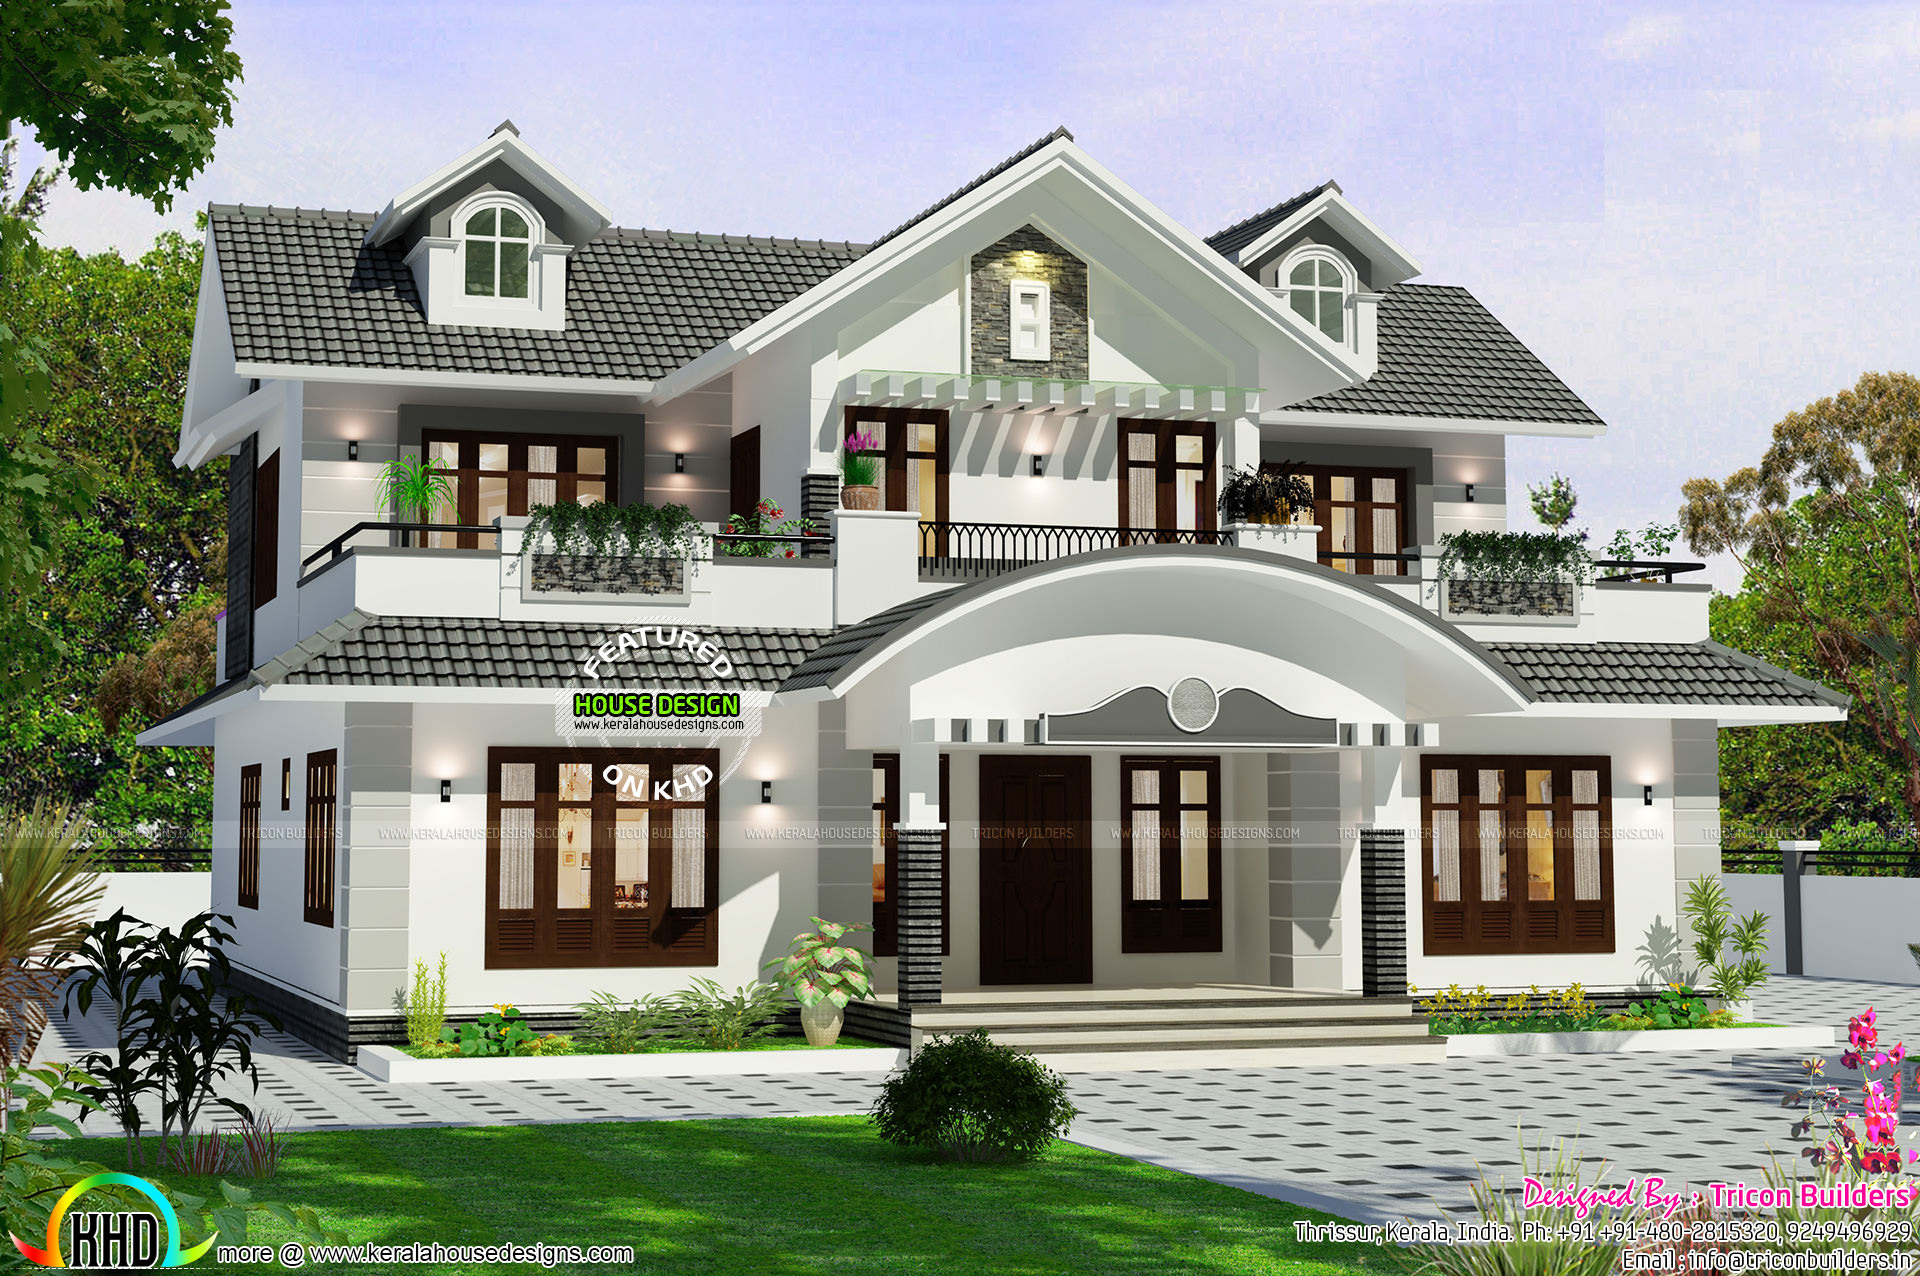 Designer home by tricon builders kerala home design and floor plans - D home designer ...